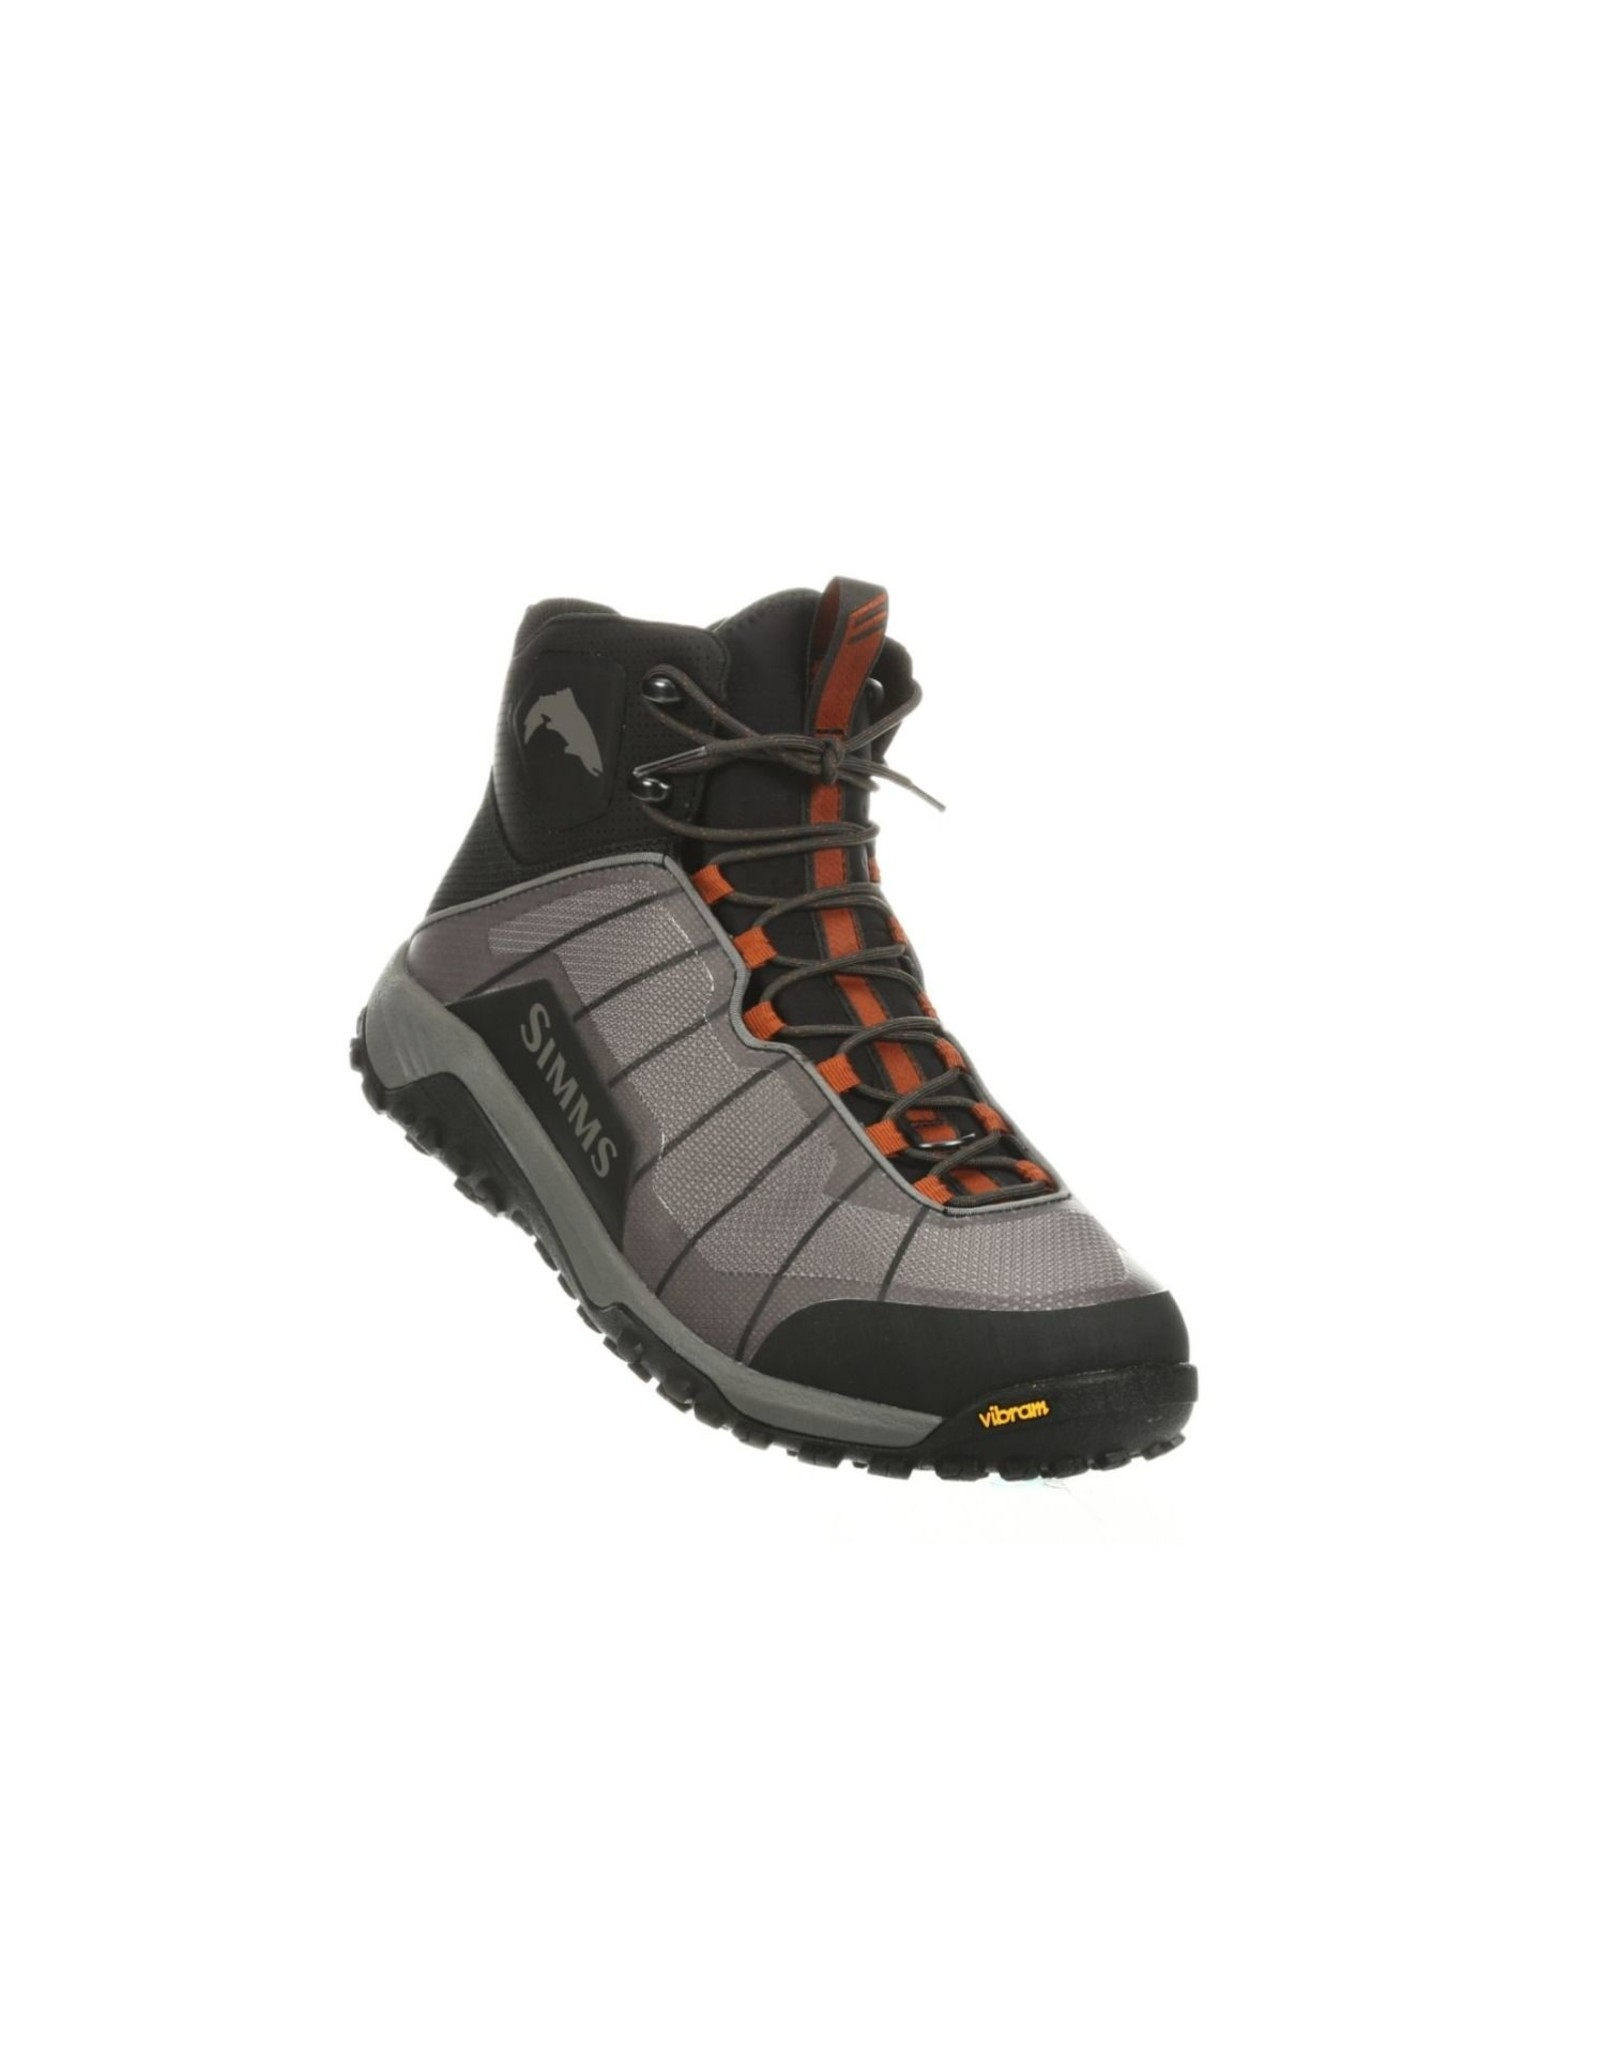 Simms Simms- Men's Flyweight Boot - Vibram Sole